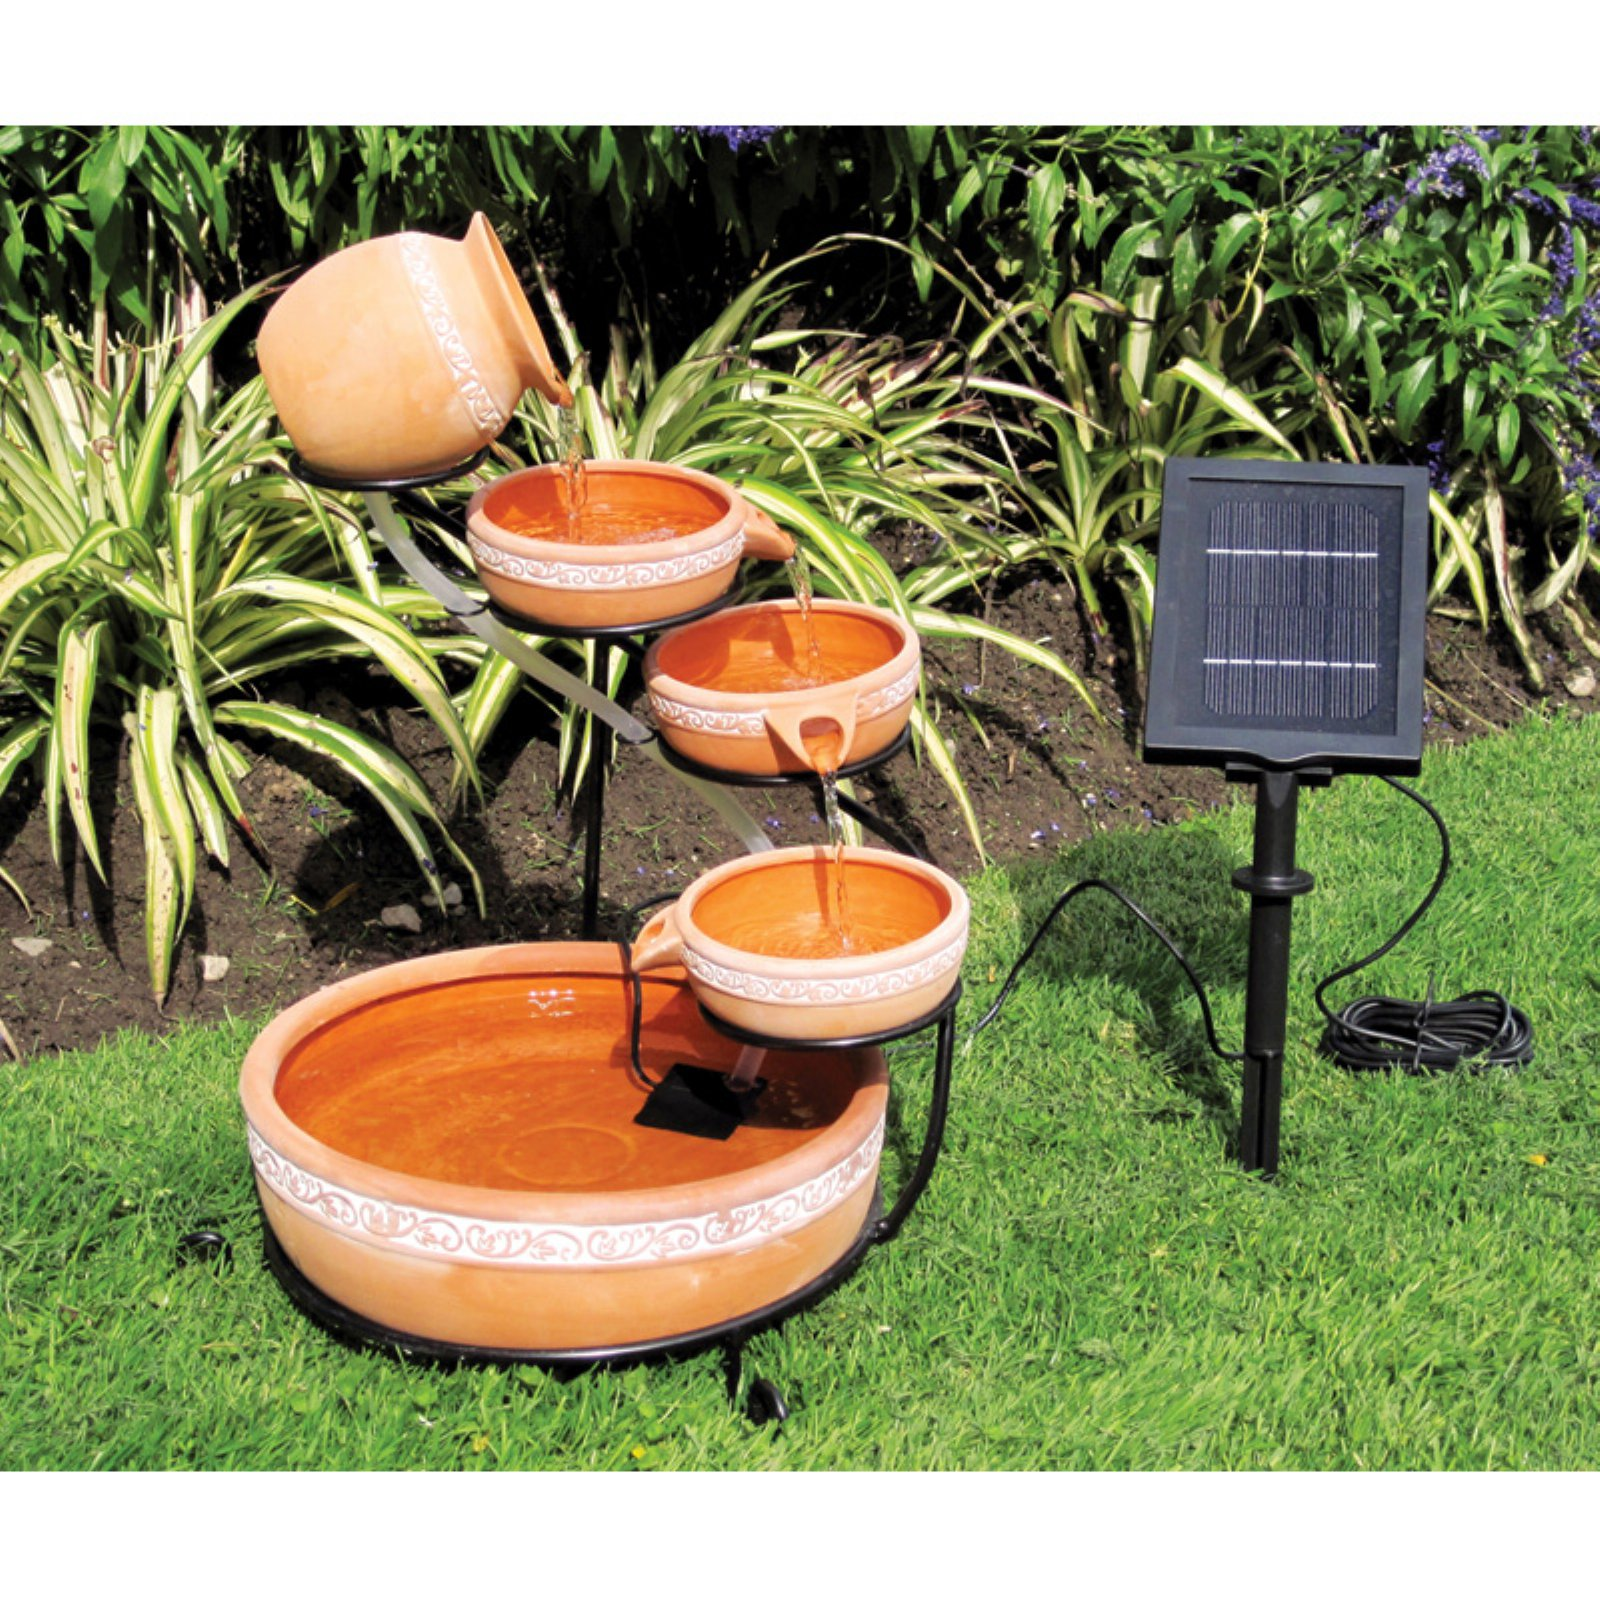 Koolscape 5-Tier Solar Cascading Fountain